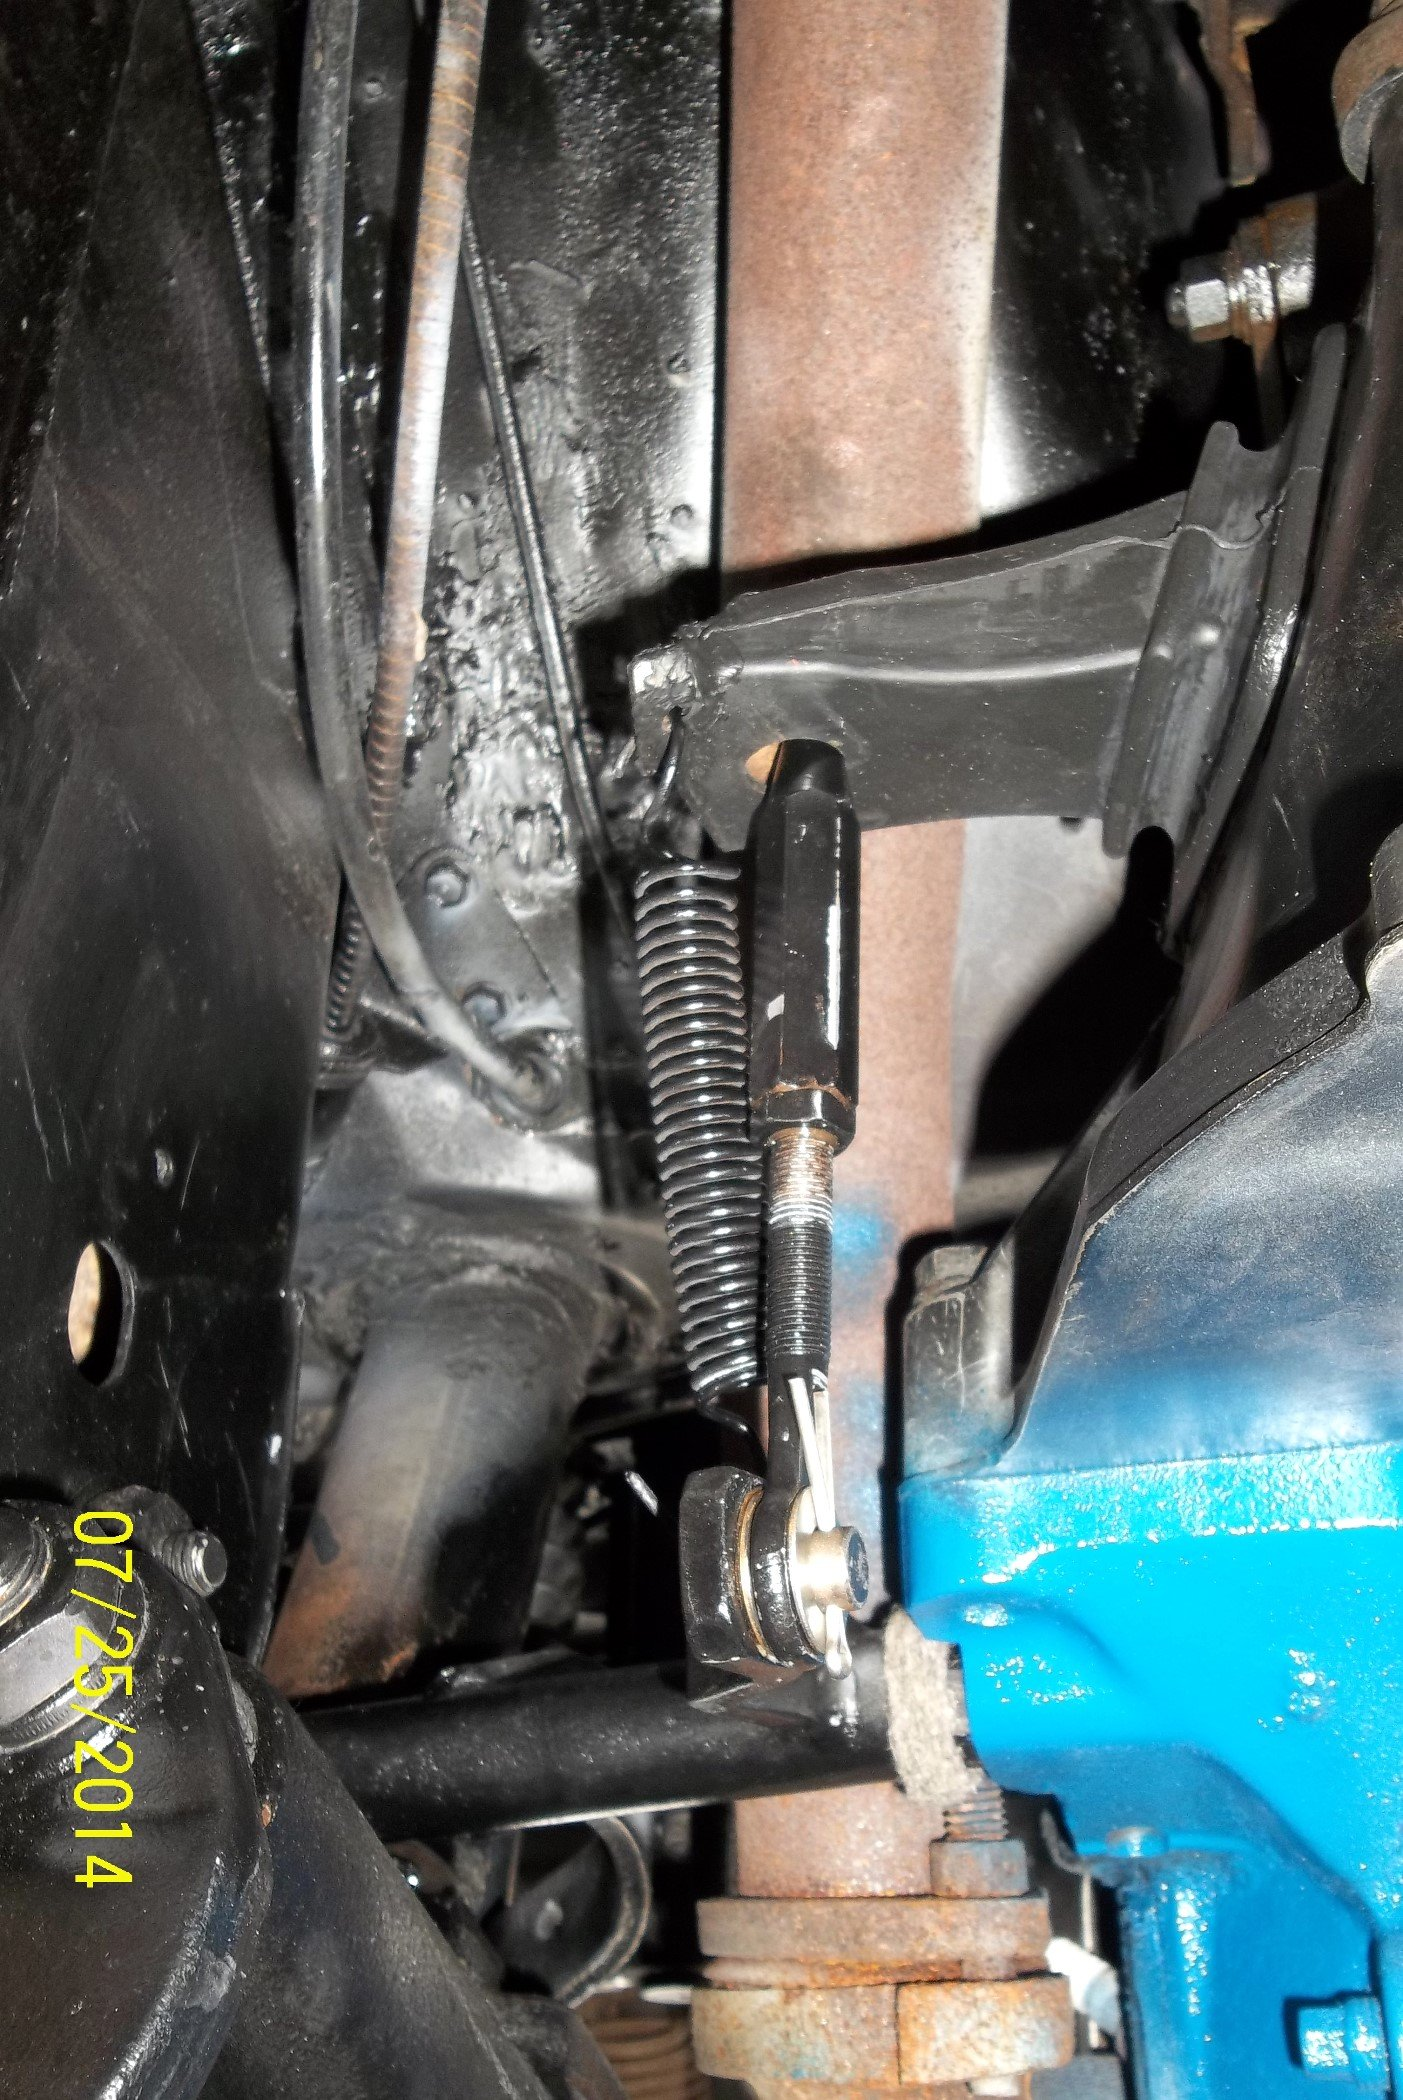 1968 Ford Mustang >> 1966 Mustang Clutch pedal not returning - Ford Mustang Forum